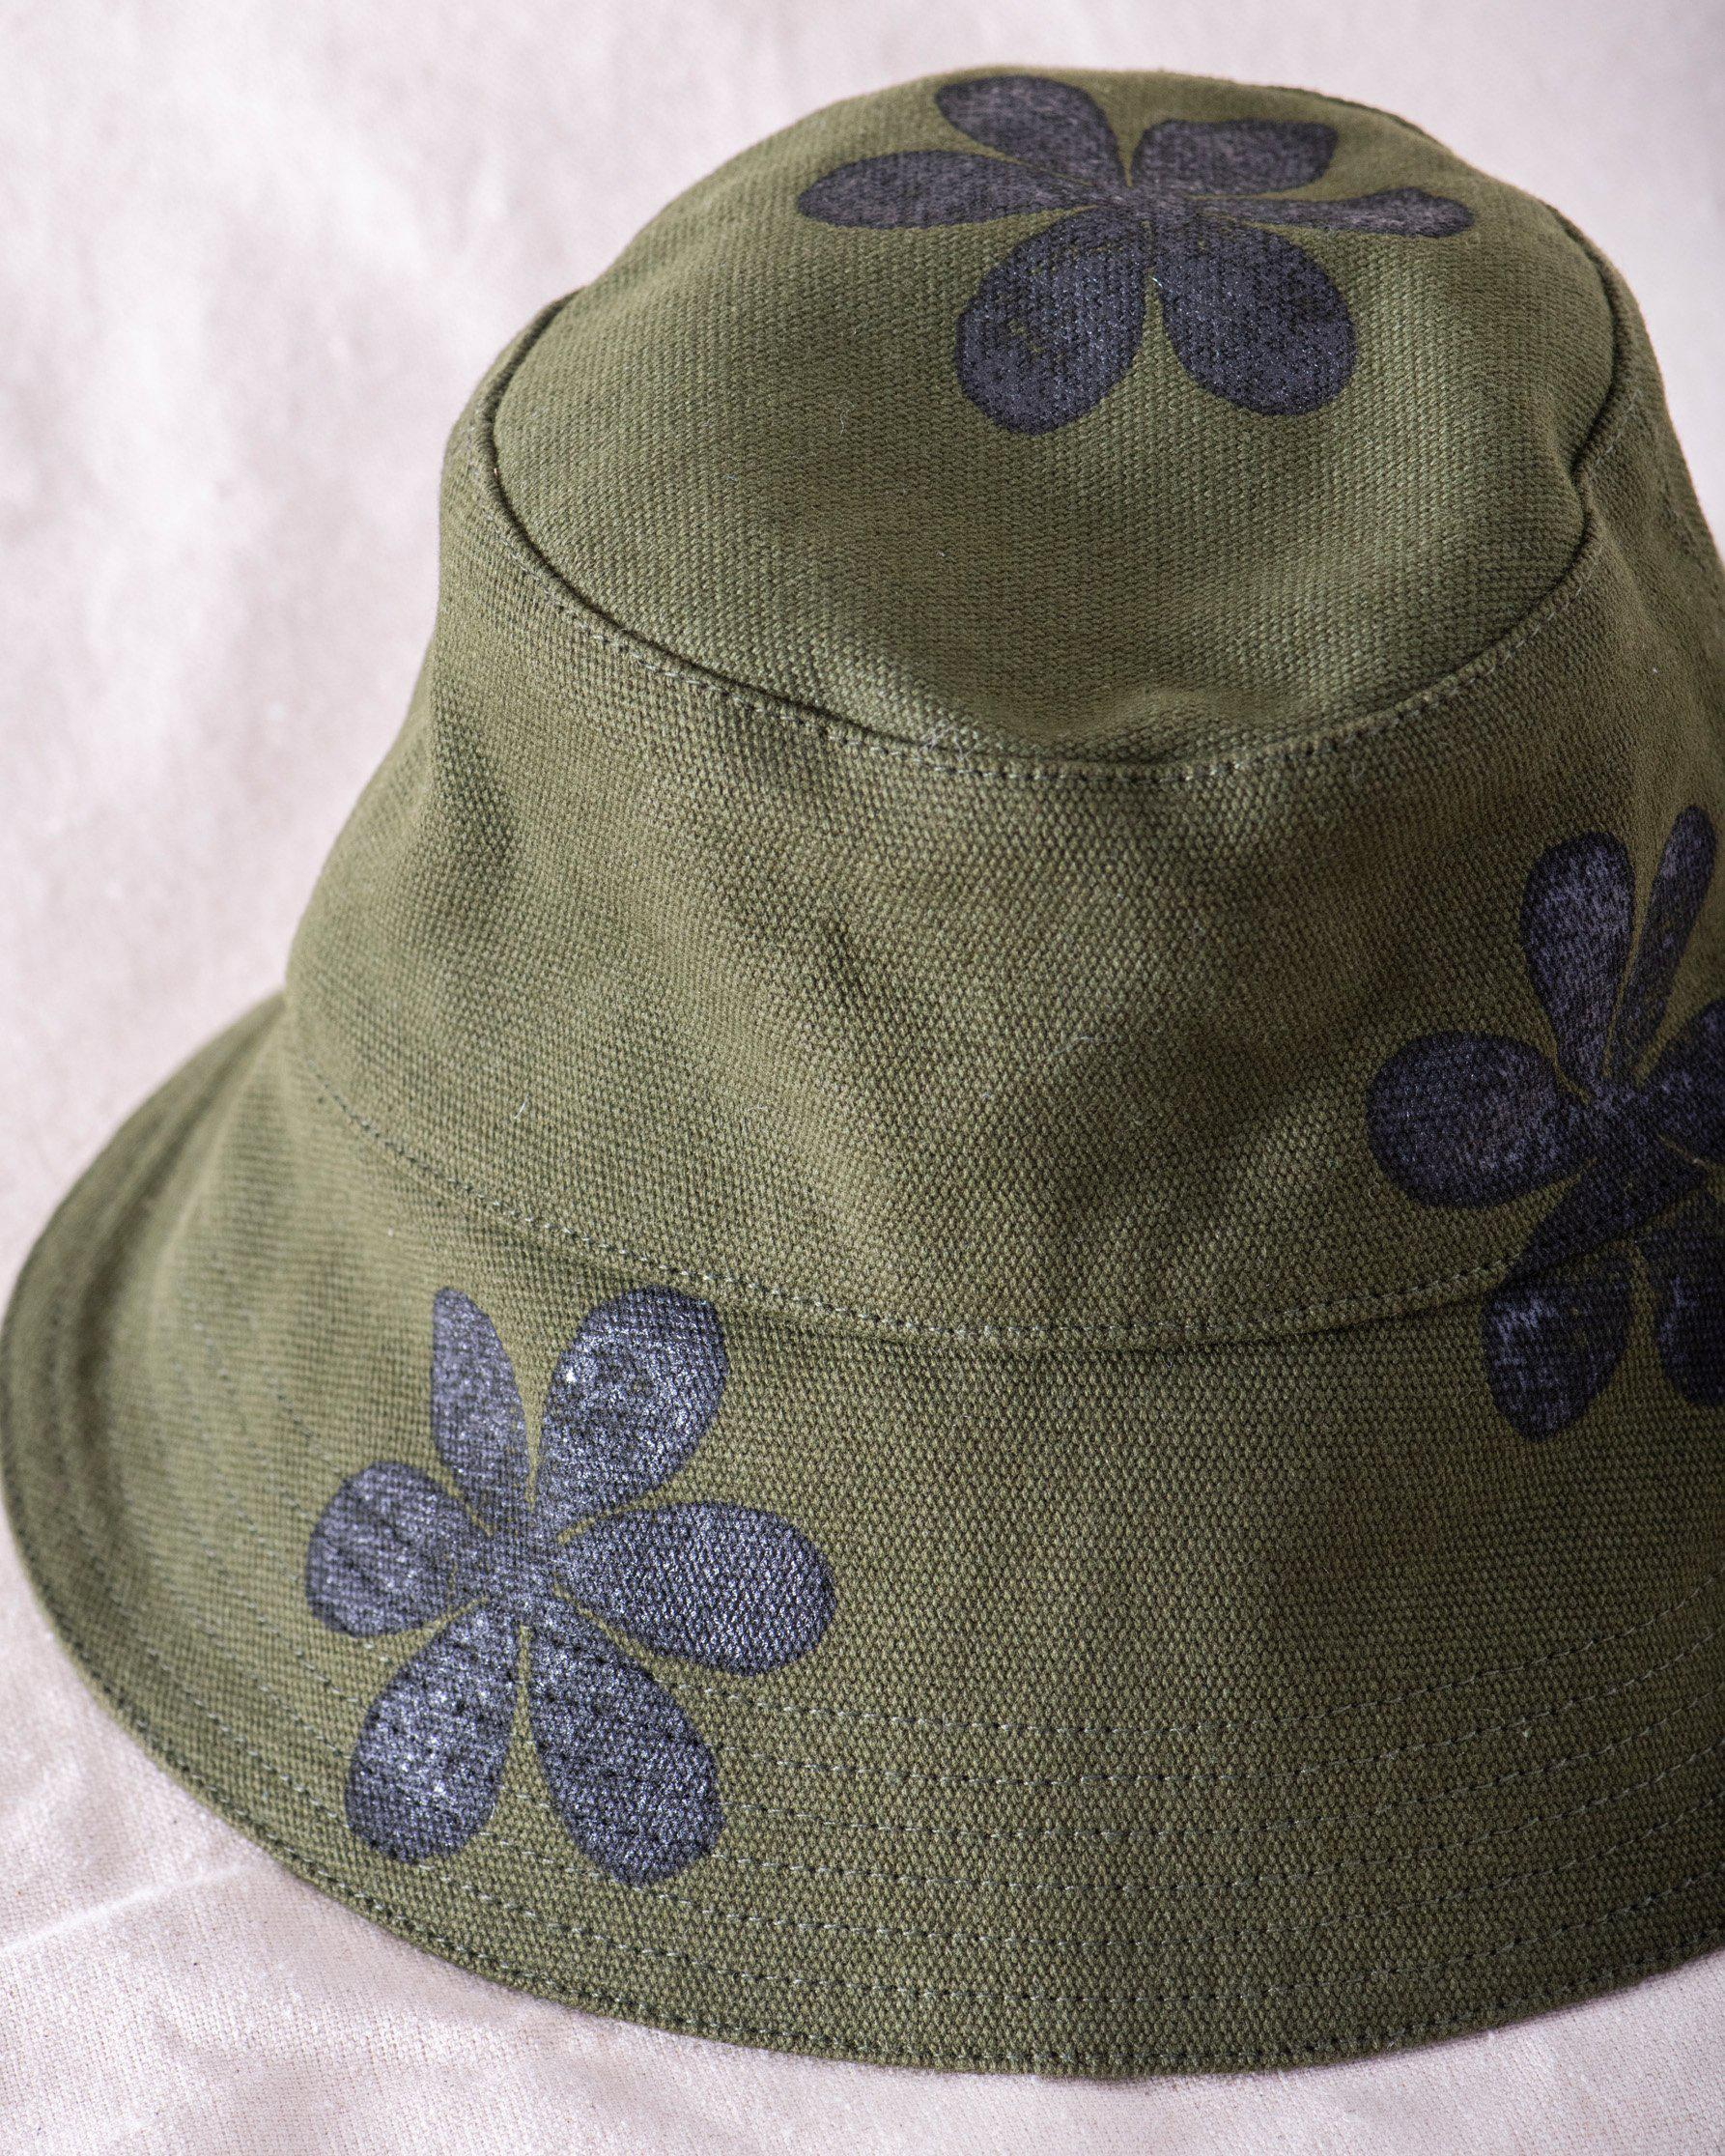 The Bucket Hat. -- Army with Daisy Stamp